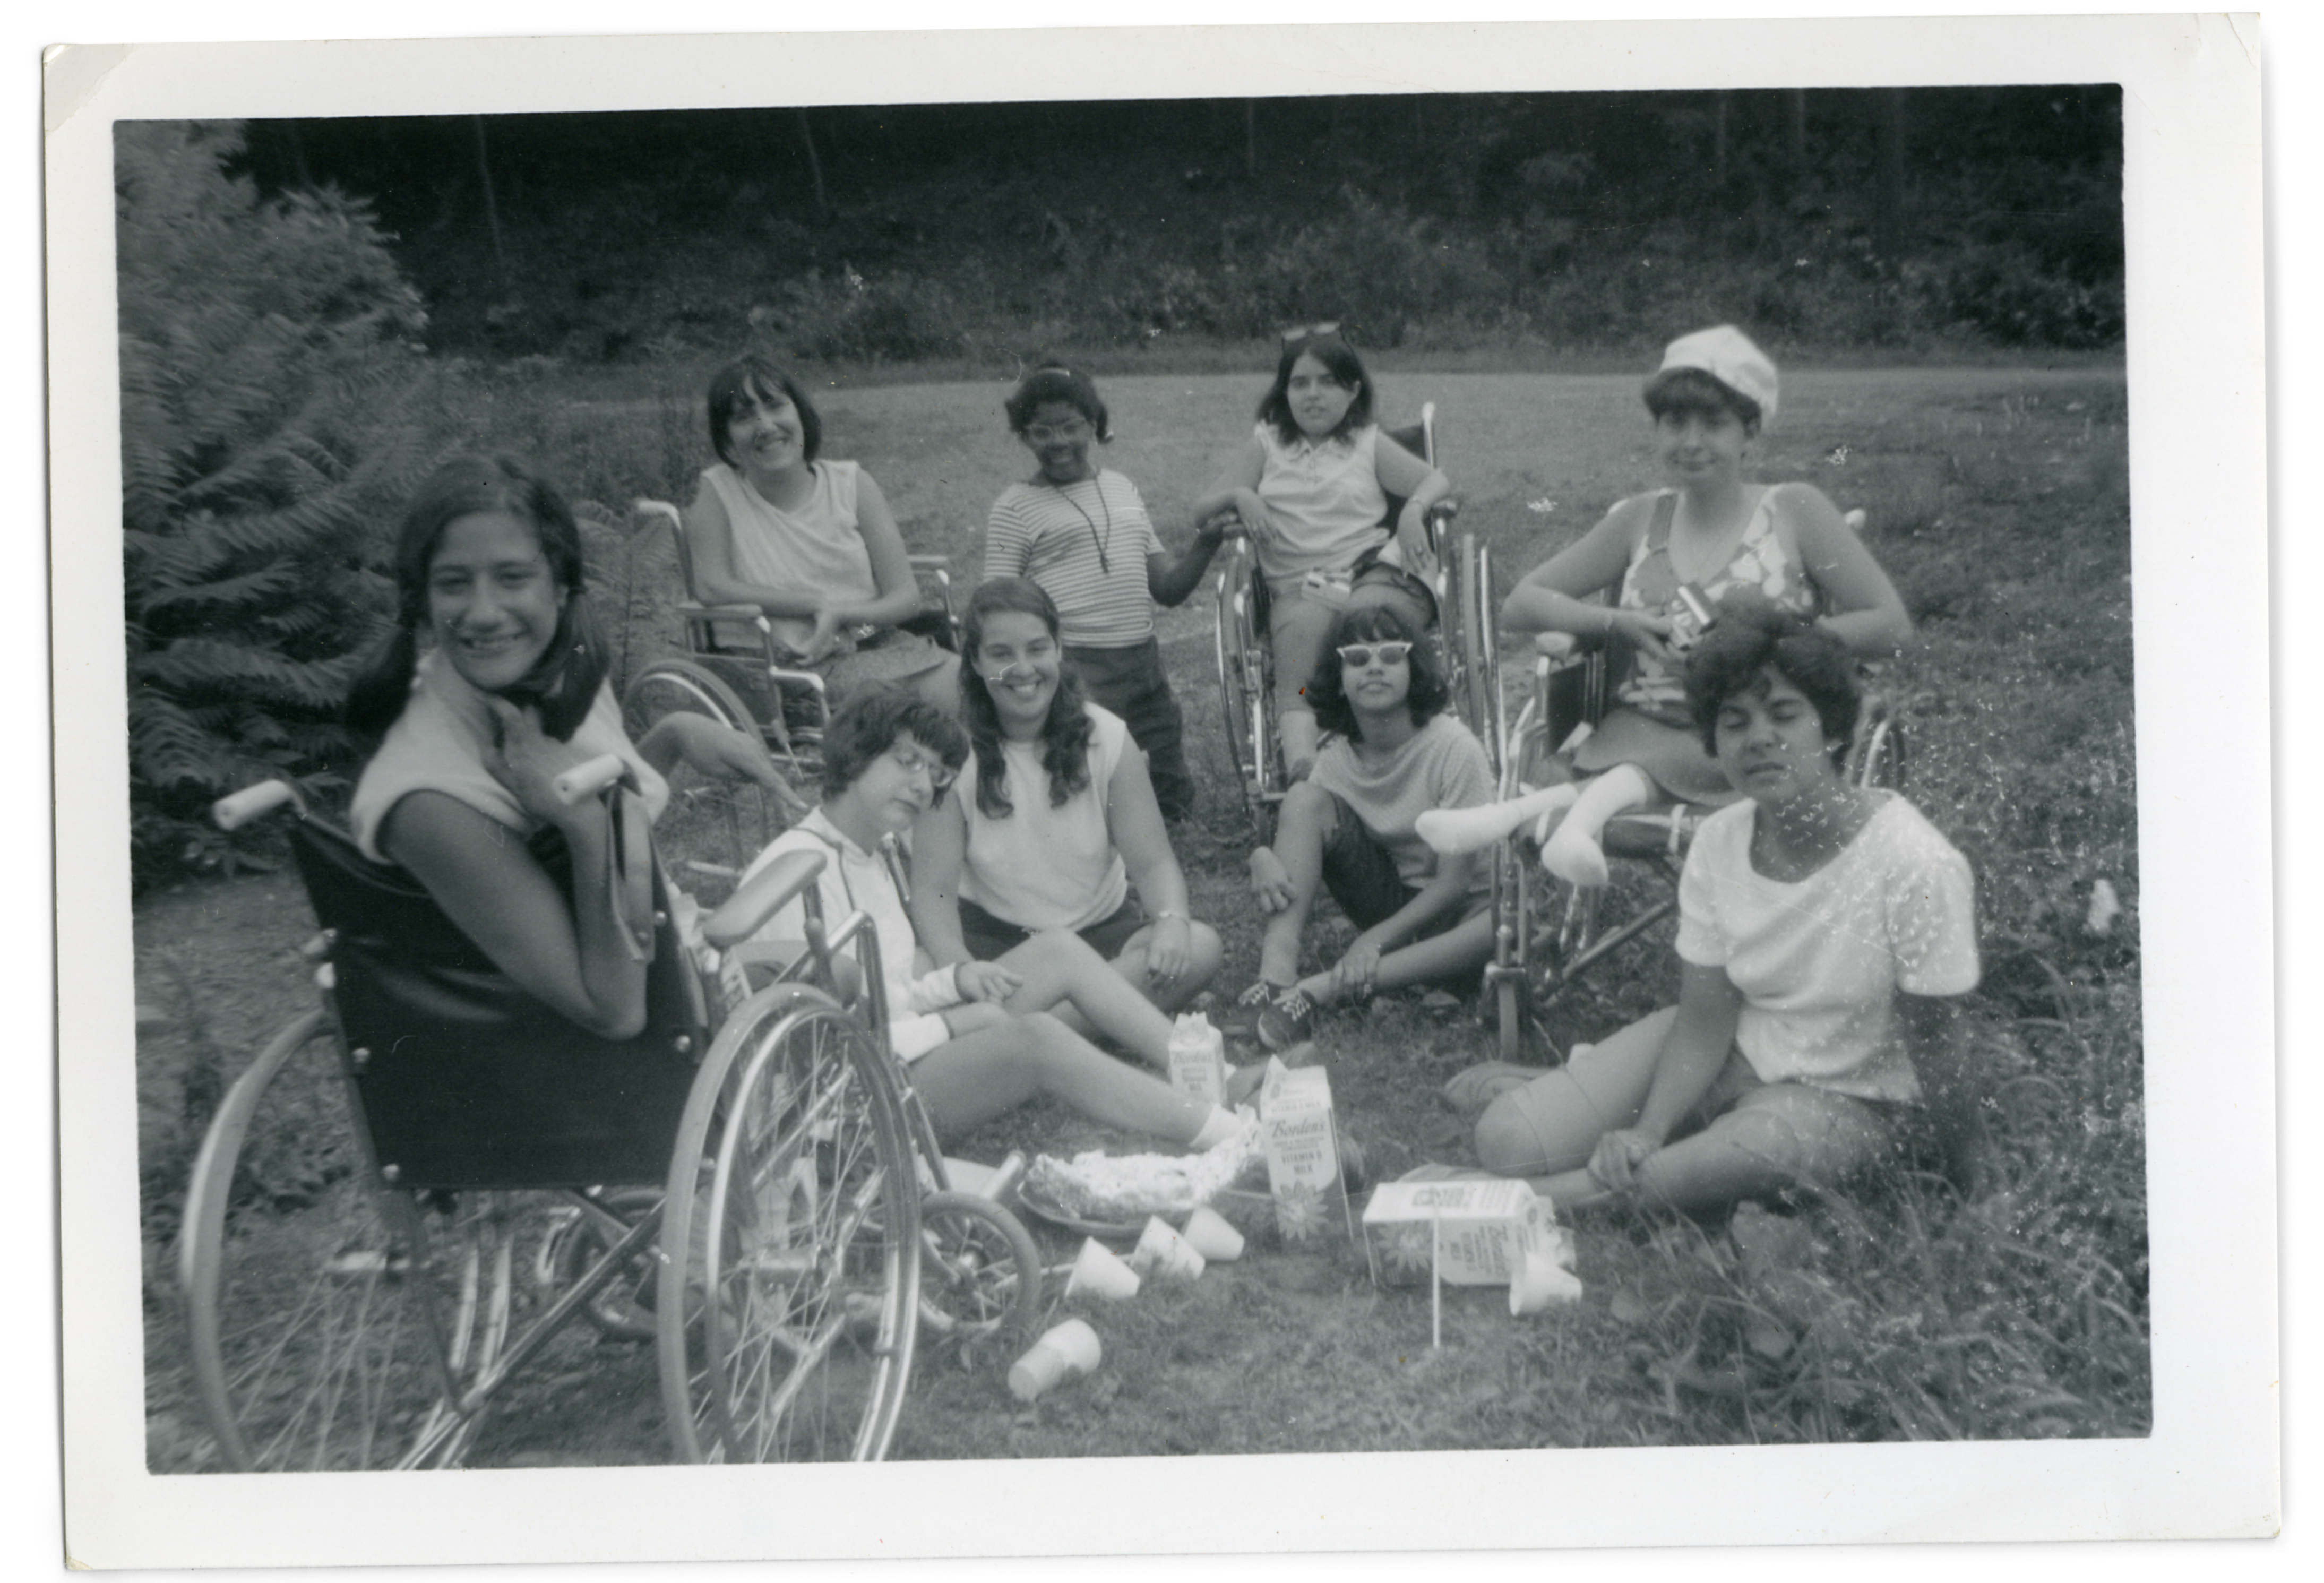 In an old photograph, teens sit in a circle on the grass, enjoying a summer day.